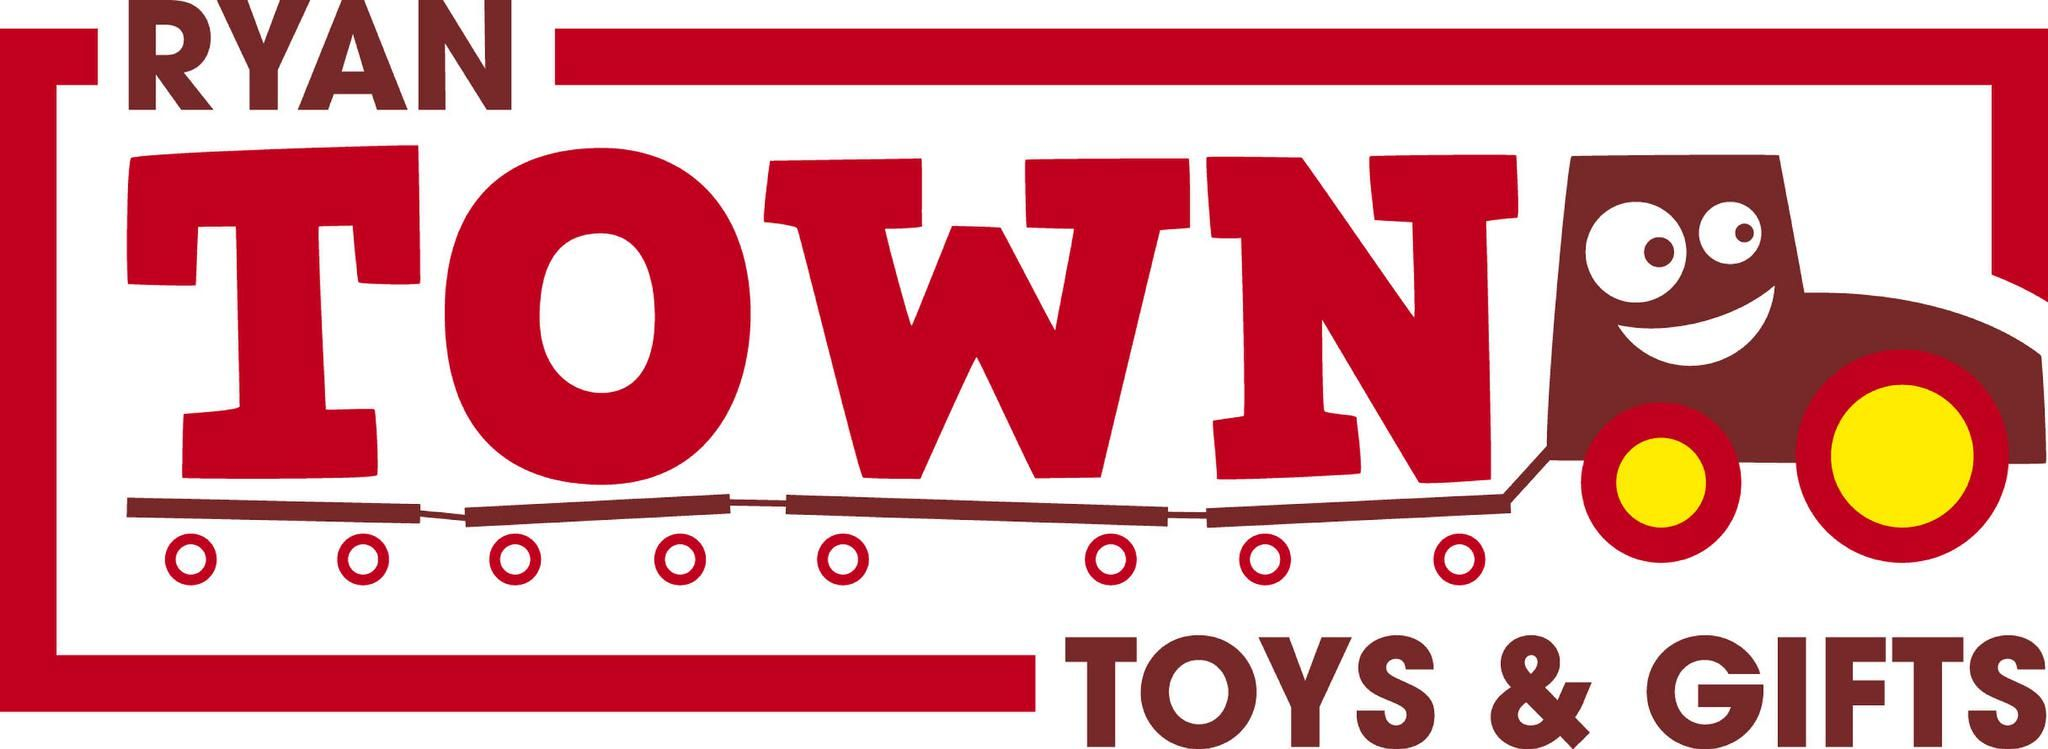 Ryan Town Toys & Gifts